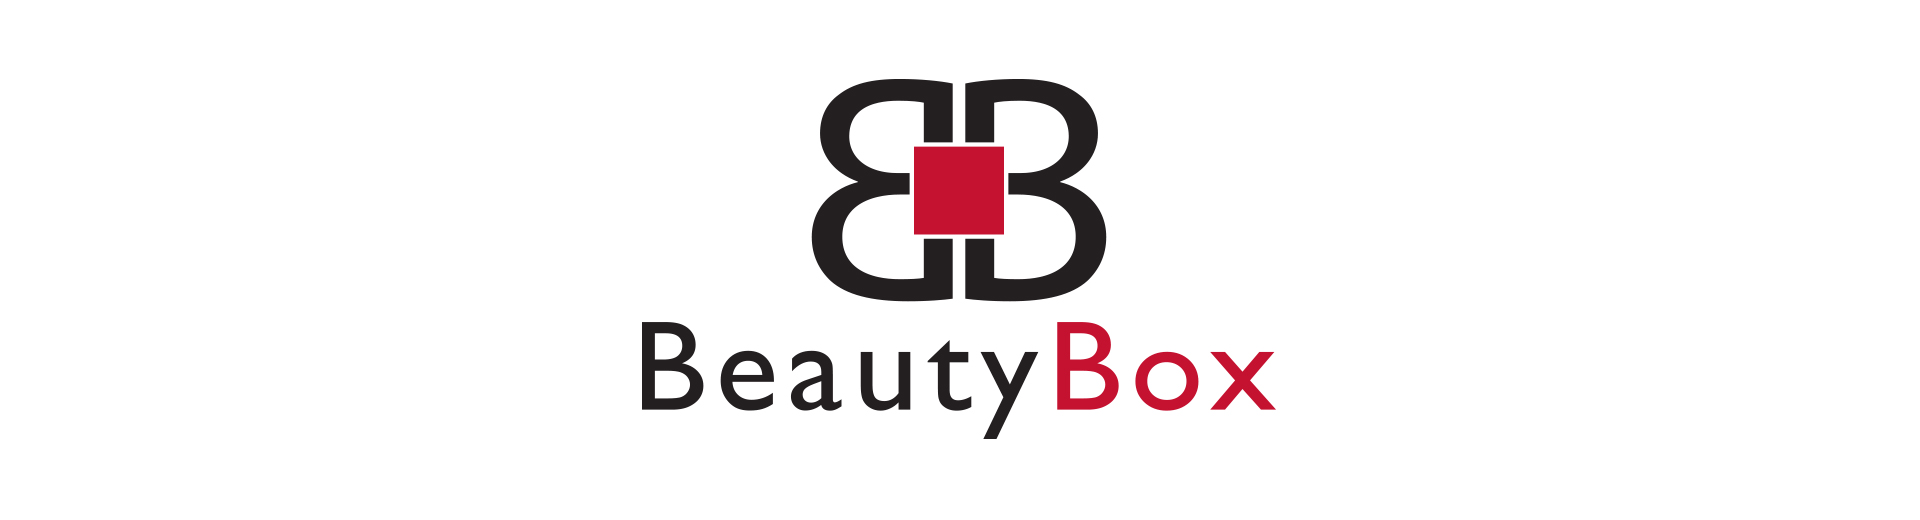 Beauty Box Logo Design